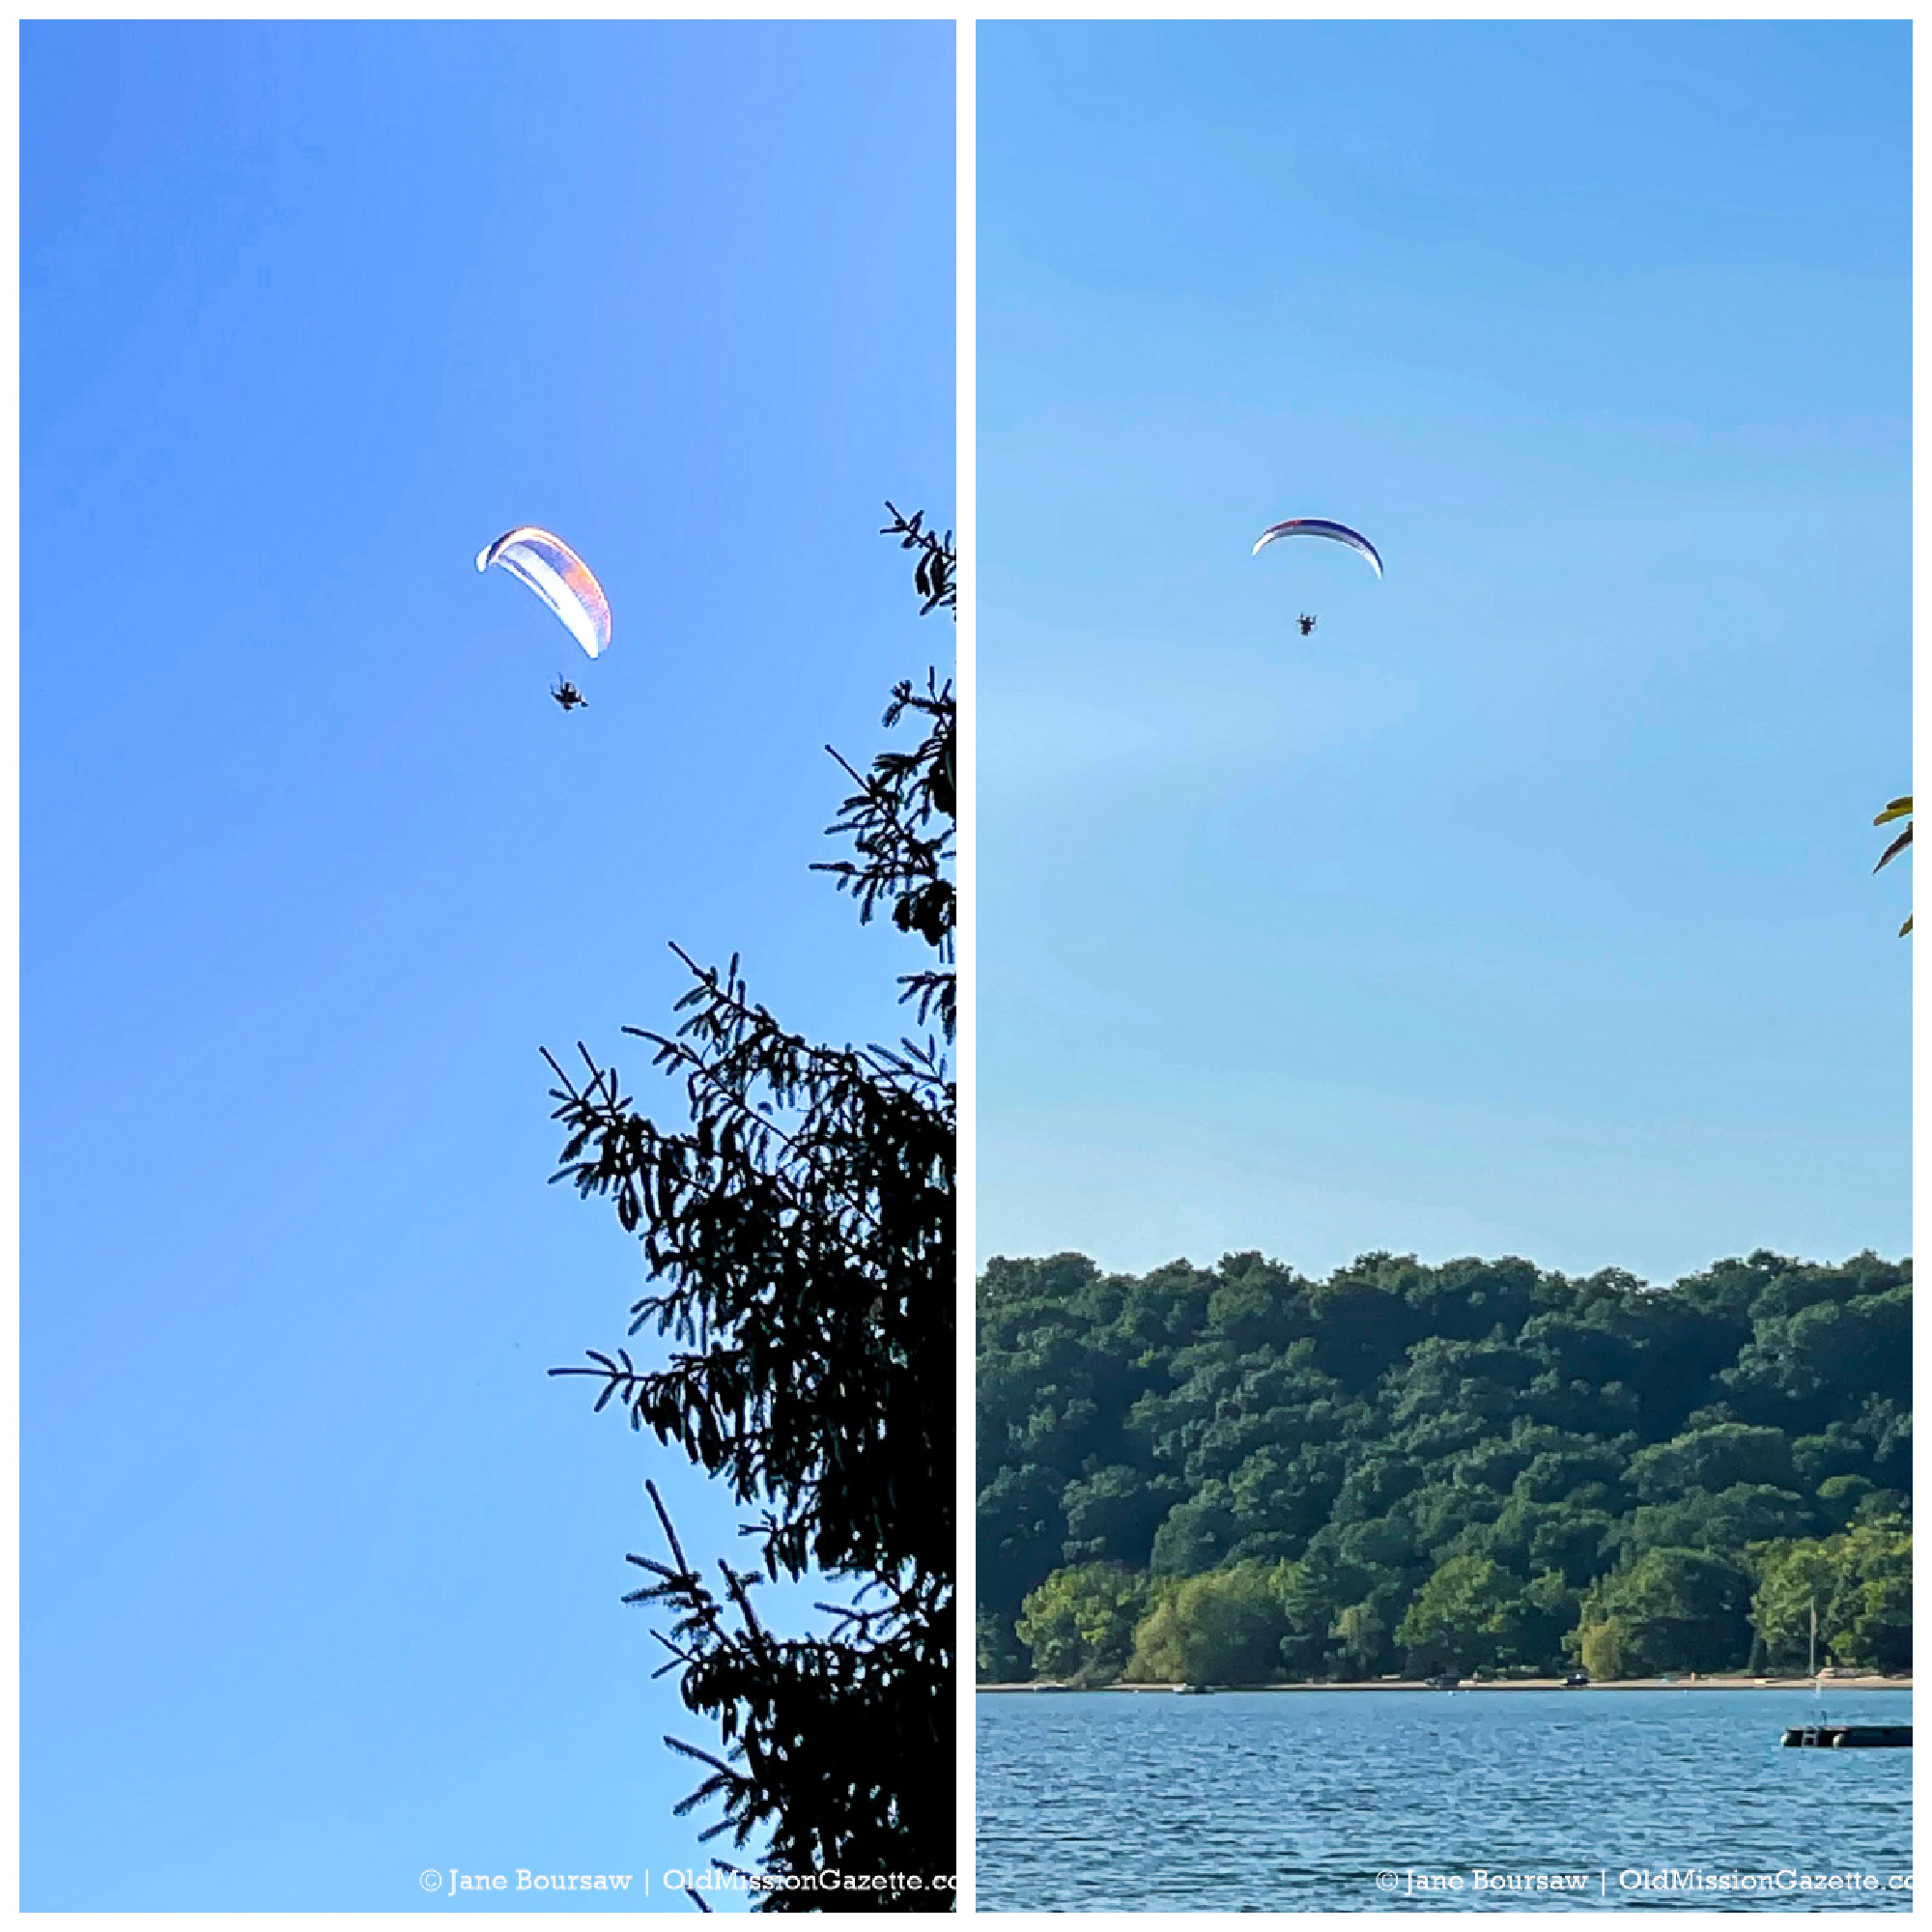 Wind Rider over Bowers Harbor on the Old Mission Peninsula | Jane Boursaw Photo